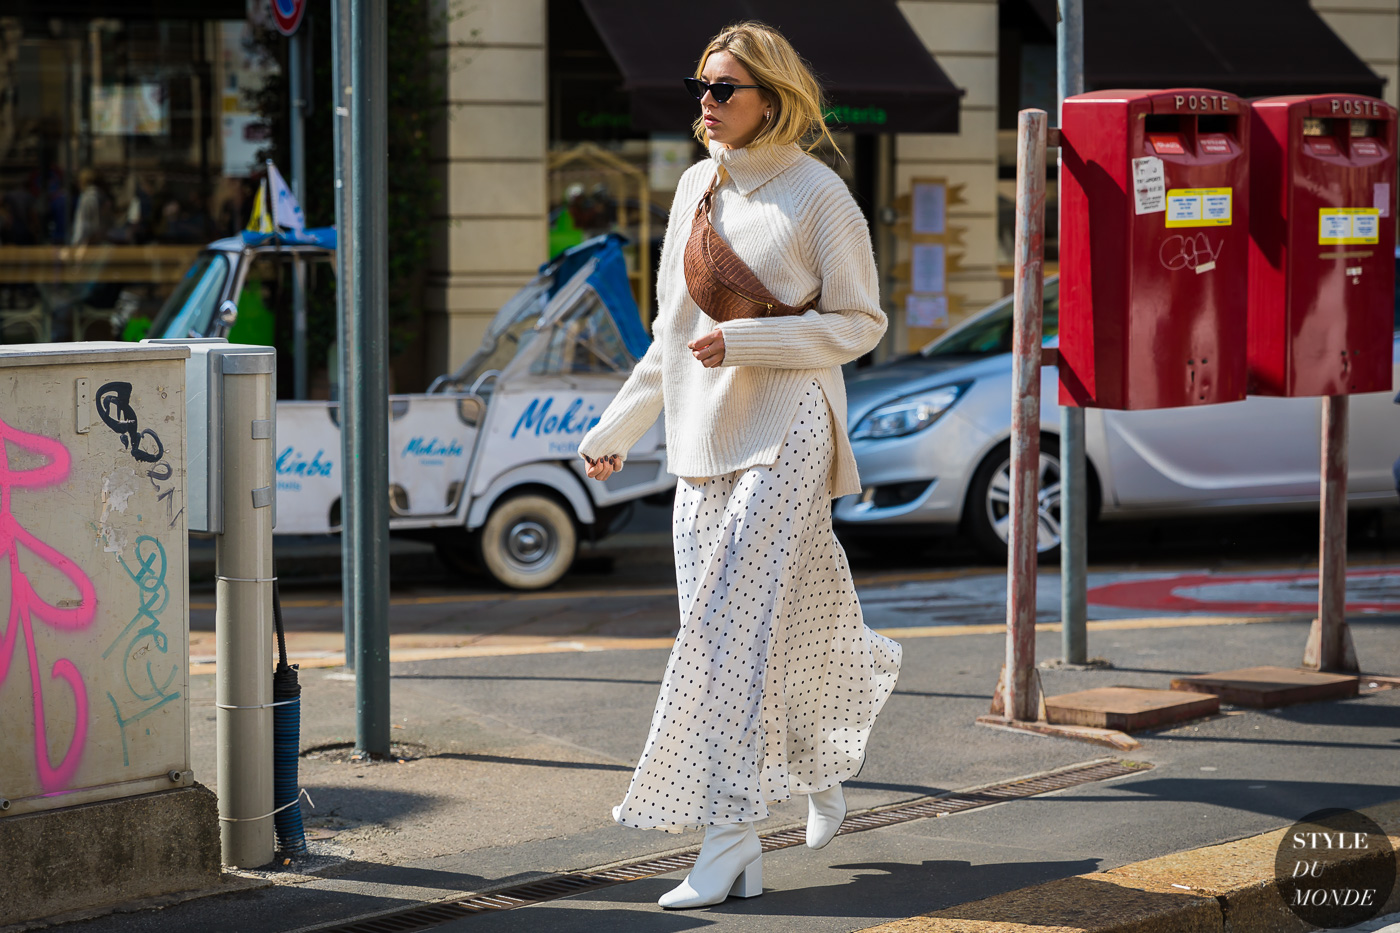 Camille Charriere by STYLEDUMONDE Street Style Fashion Photography_48A9425